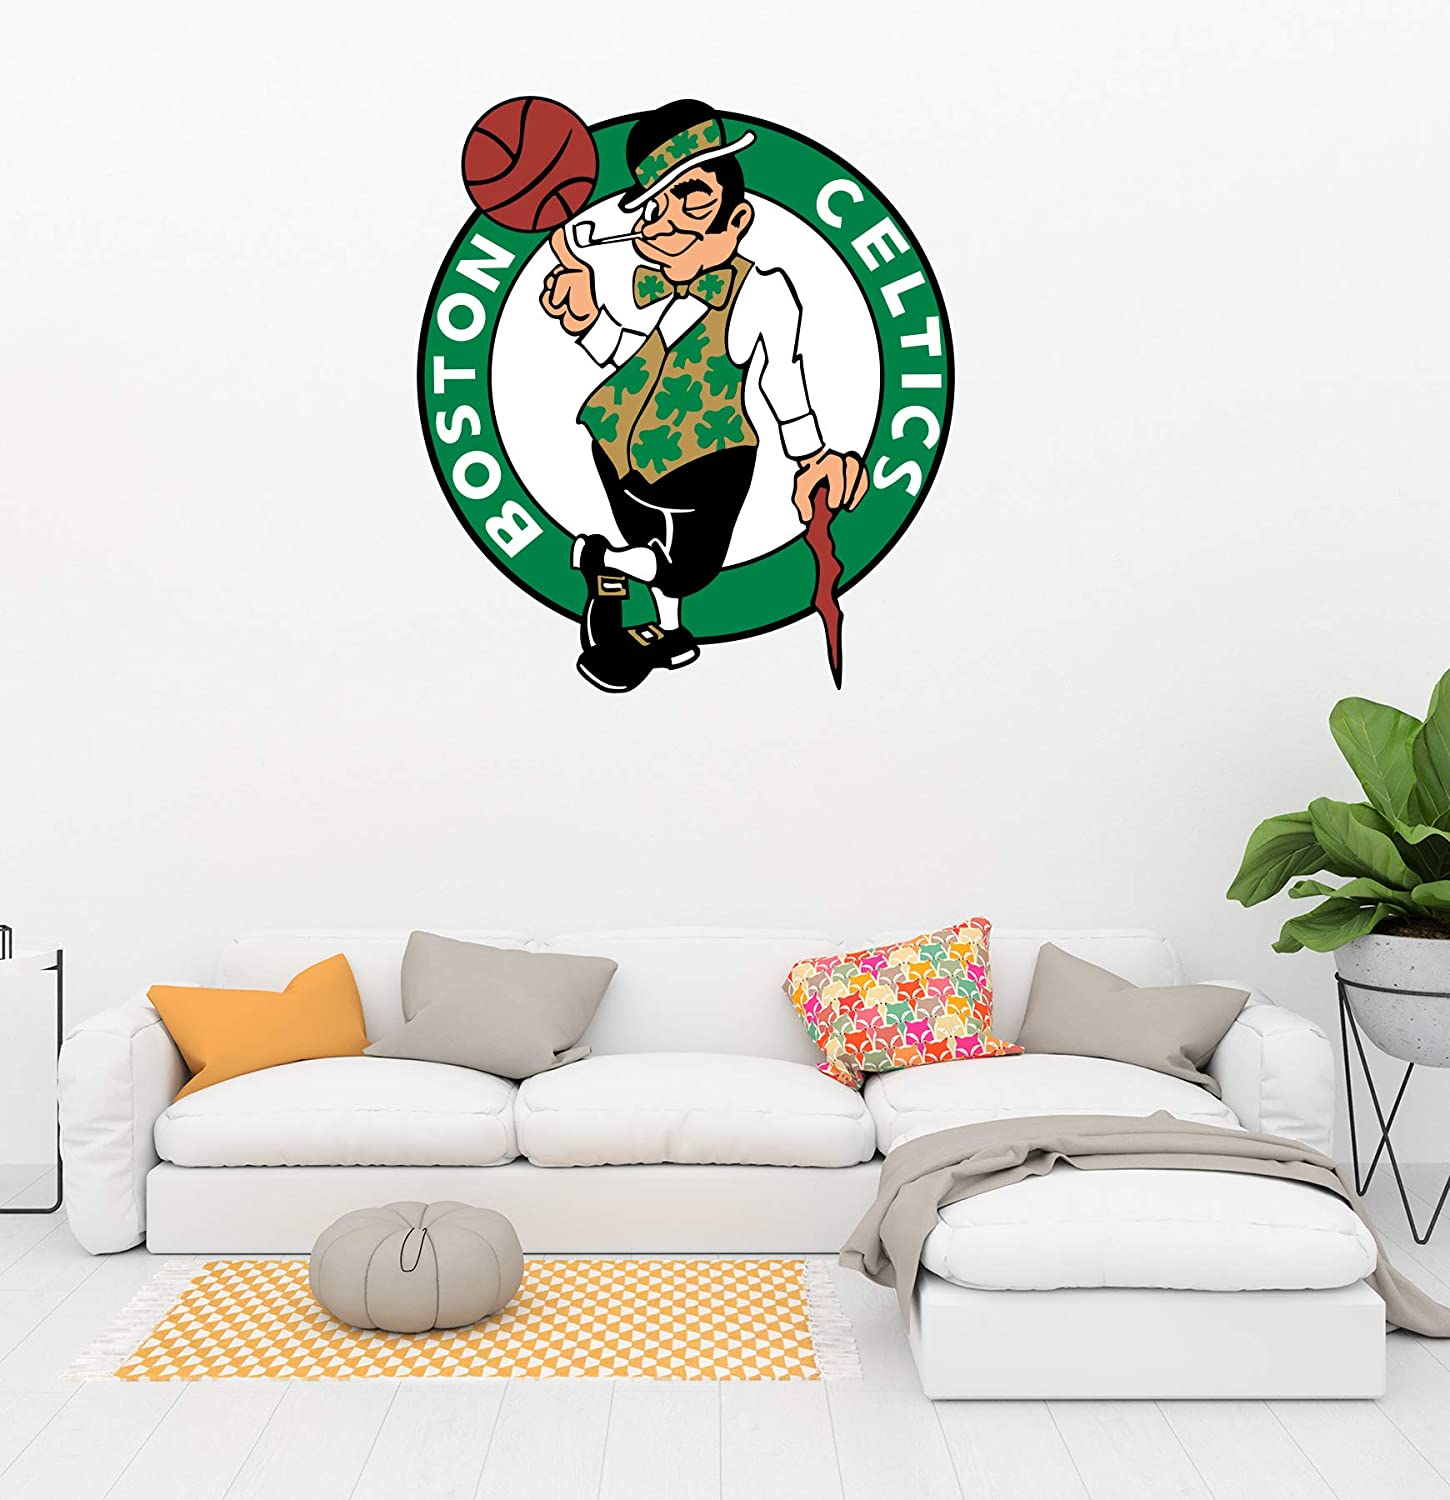 """Basketball Team Logo - Removable Wall Decal Vinyl for Home Decoration (20"""" x 22"""")"""